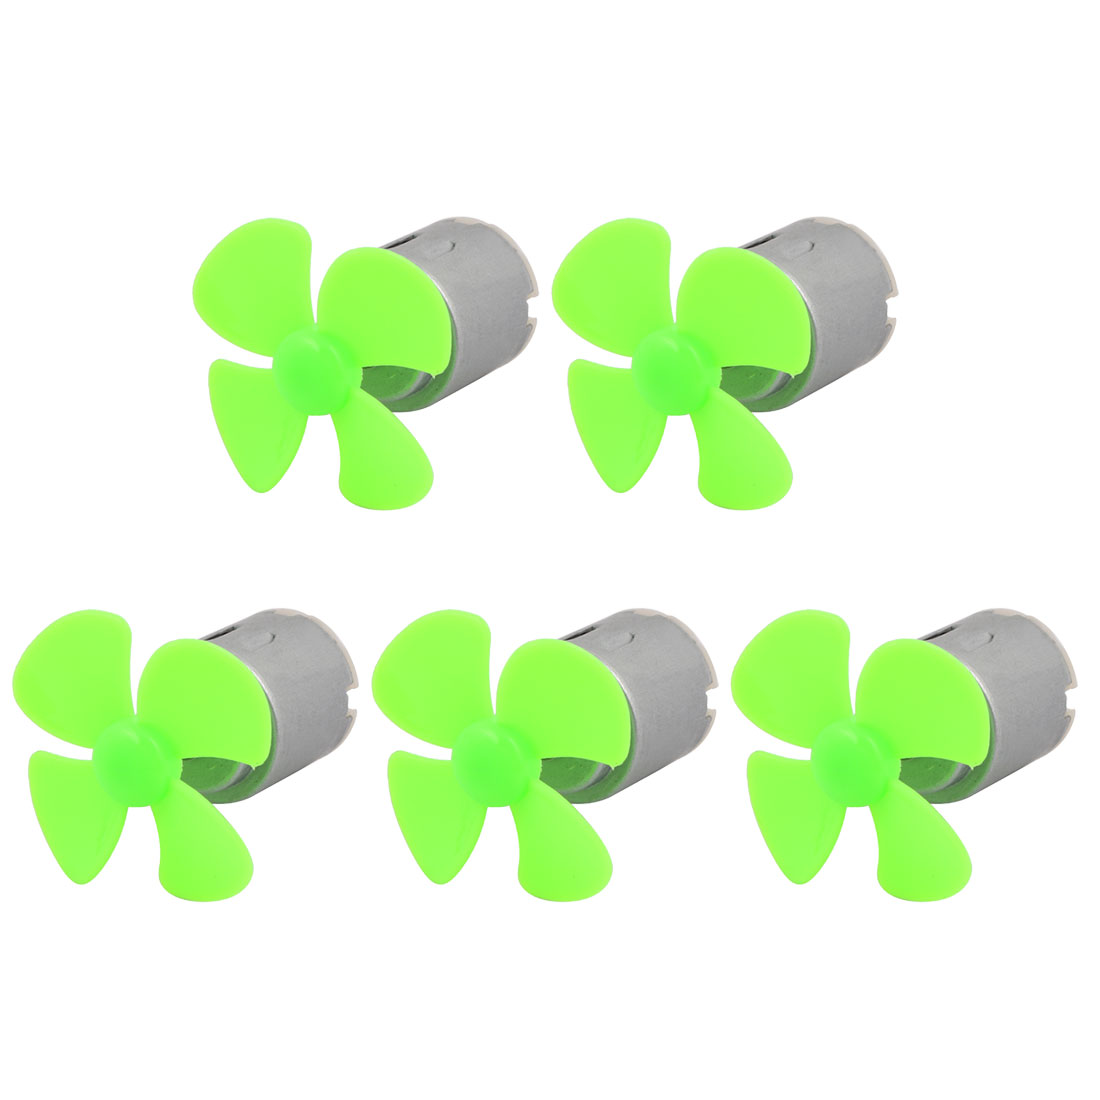 5pcs DC 3V 0.13A 17000RPM Strong Force Motor 4 Blades 40mm Green Propeller for RC Aircraft